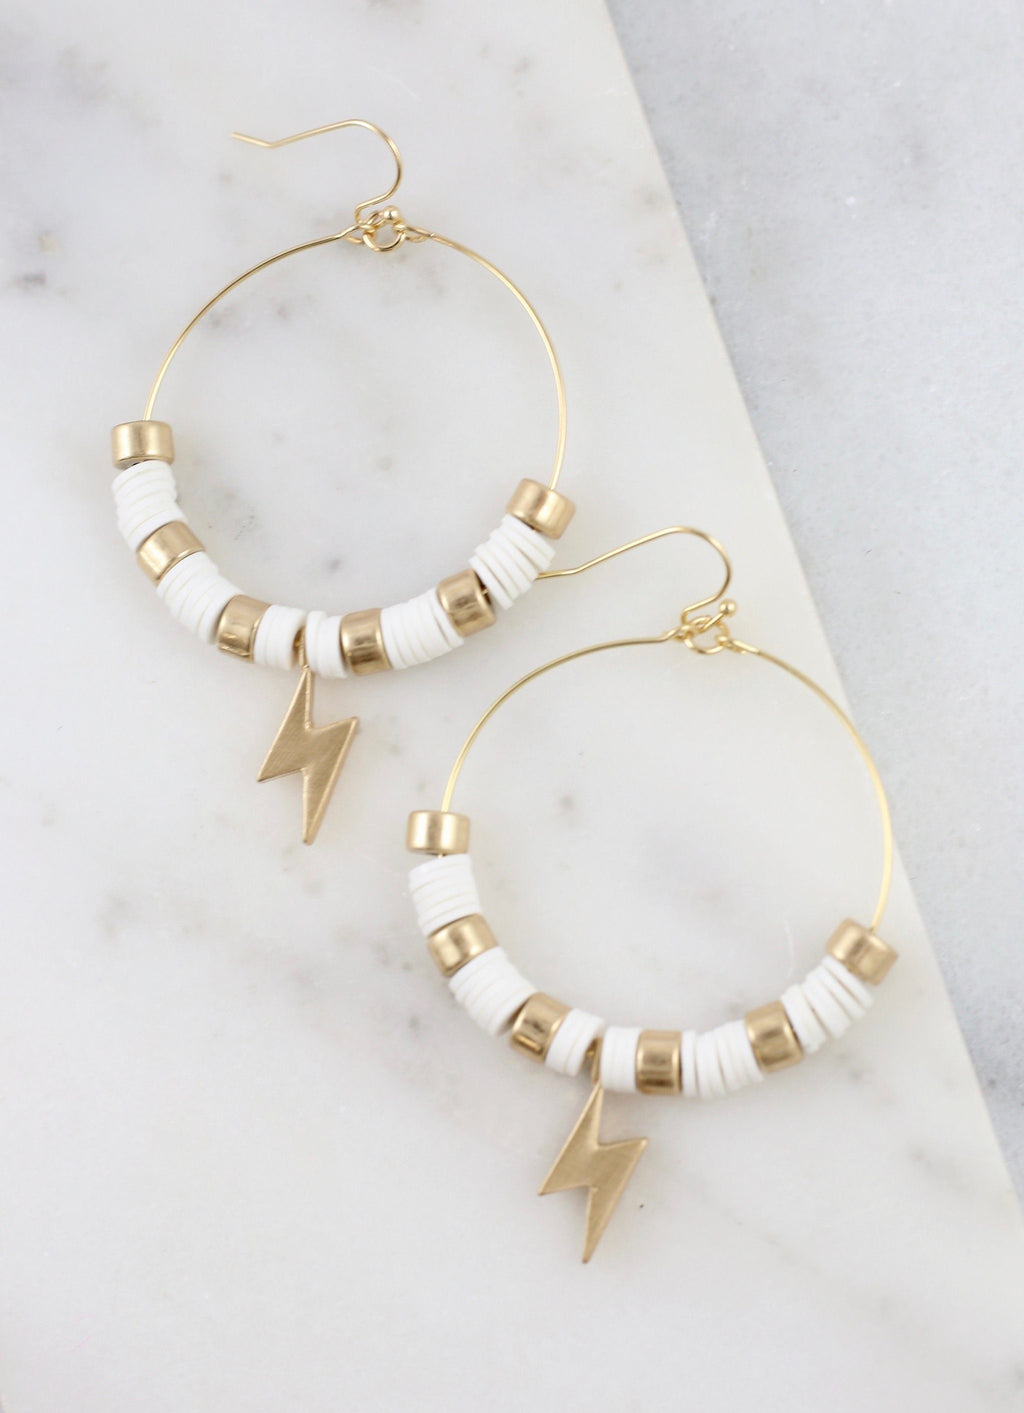 Strike Out White Disc Lightning Bolt Earring - Caroline Hill